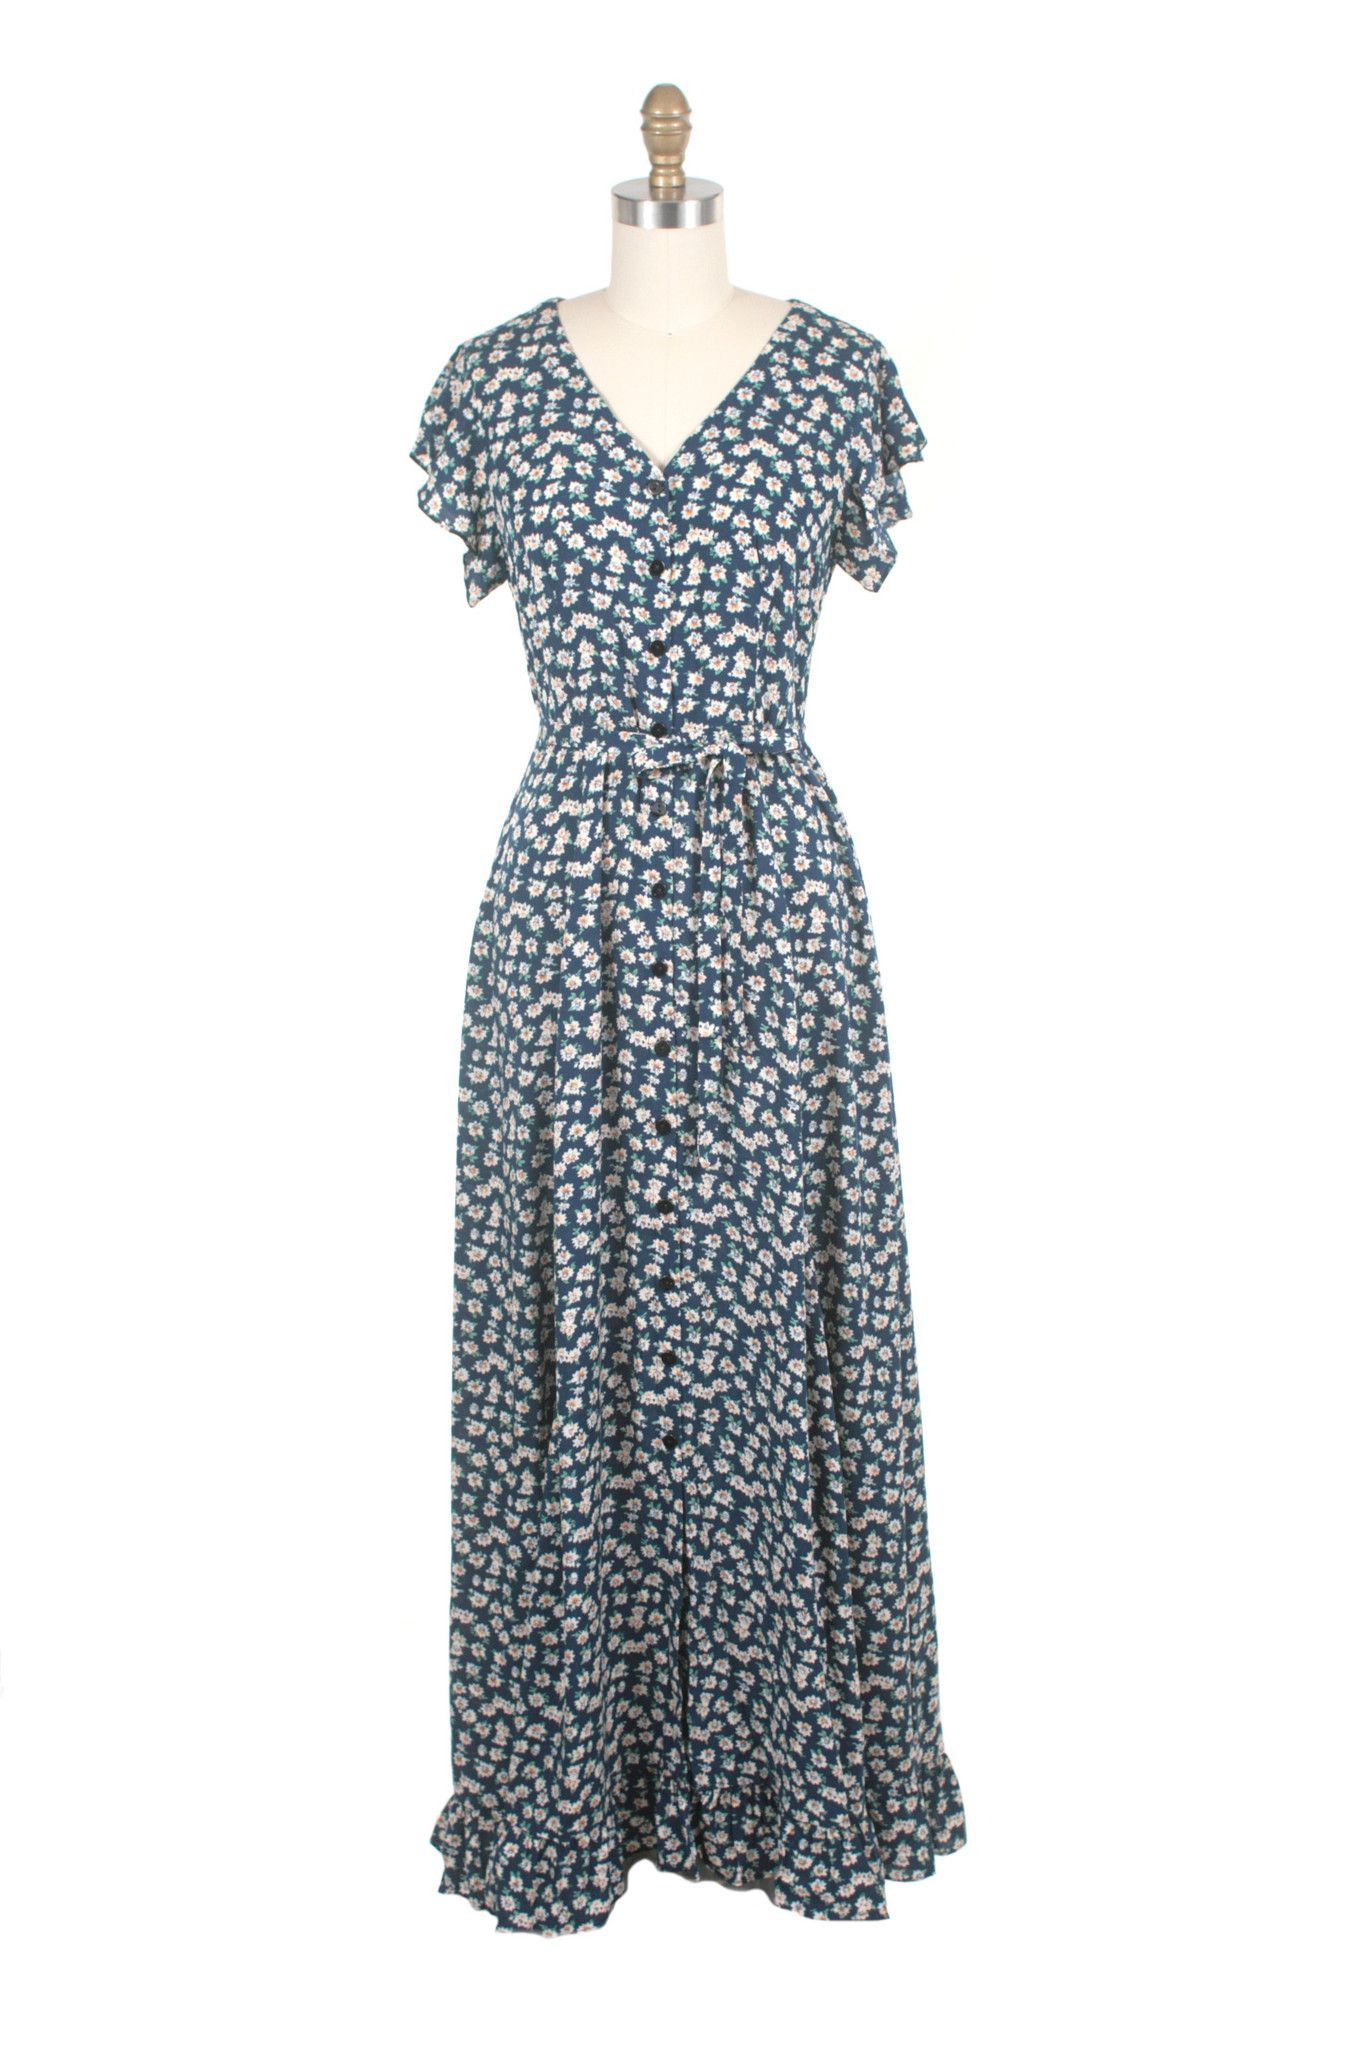 Blue rayon print with white flowers maxi button down dress with blue rayon print with white flowers maxi button down dress with ruffle sleeves and a wide izmirmasajfo Image collections